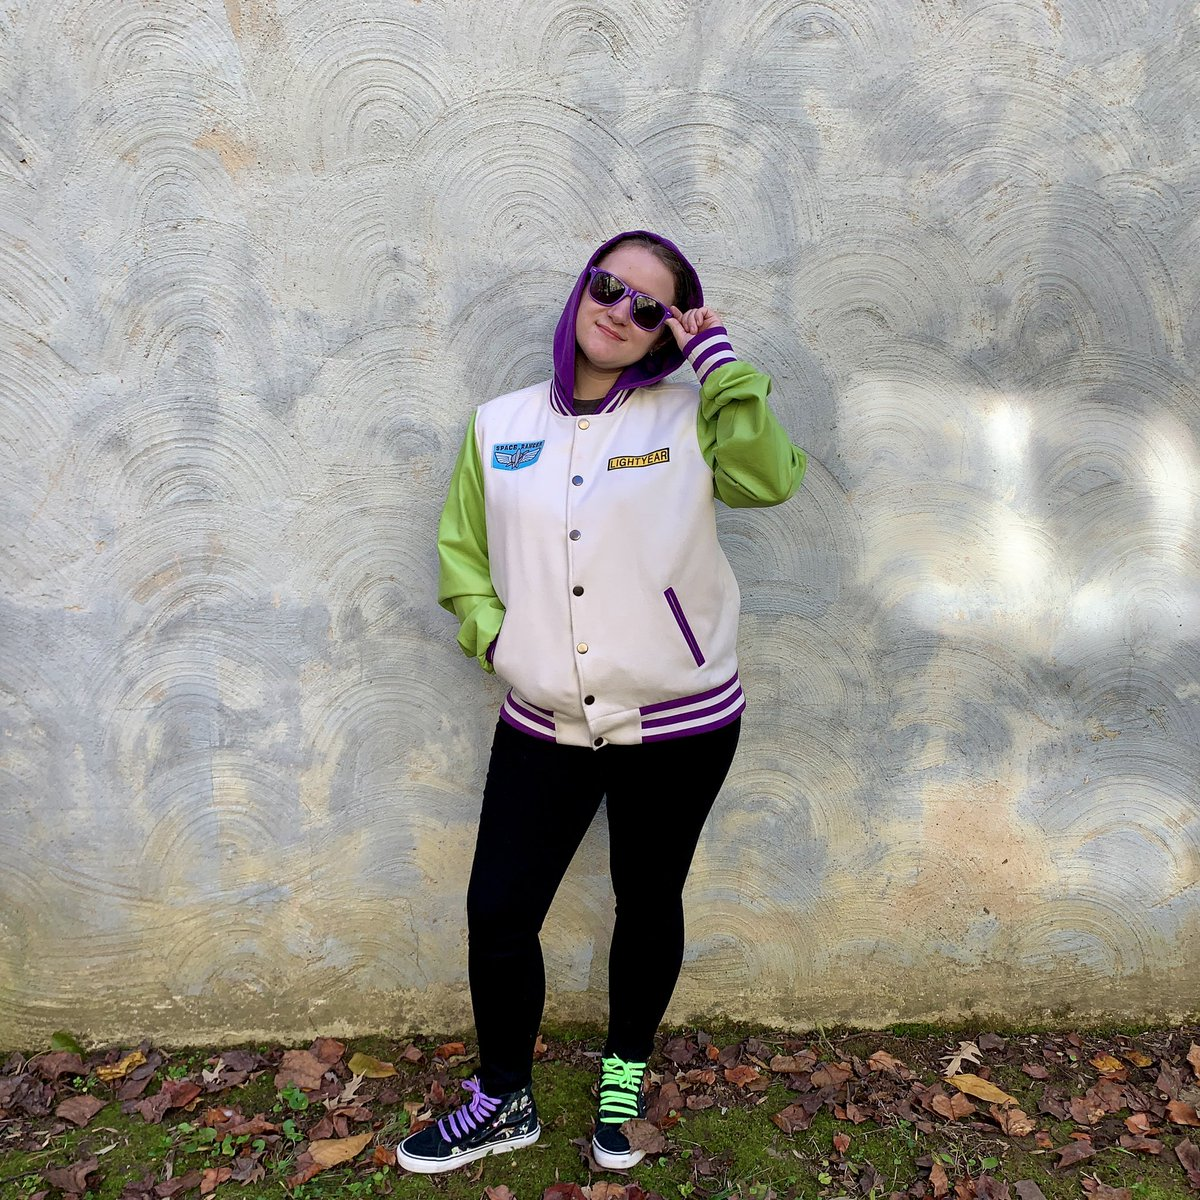 I believe the term you're looking for is SPACE RANGER ✨🌌🚀  #DisneyOutfitOfTheDay #OutfitOfTheDay #OOTD #Disney #DisneyStyle #Buzz #BuzzLightyear #ToyStory #Pixar #PixarStyle #DisneyMagicMoments #WearAMask #MaskeraidBound #Flatlay #DisneyFlatlay #ShopDisney @DisneyStyle @Pixar